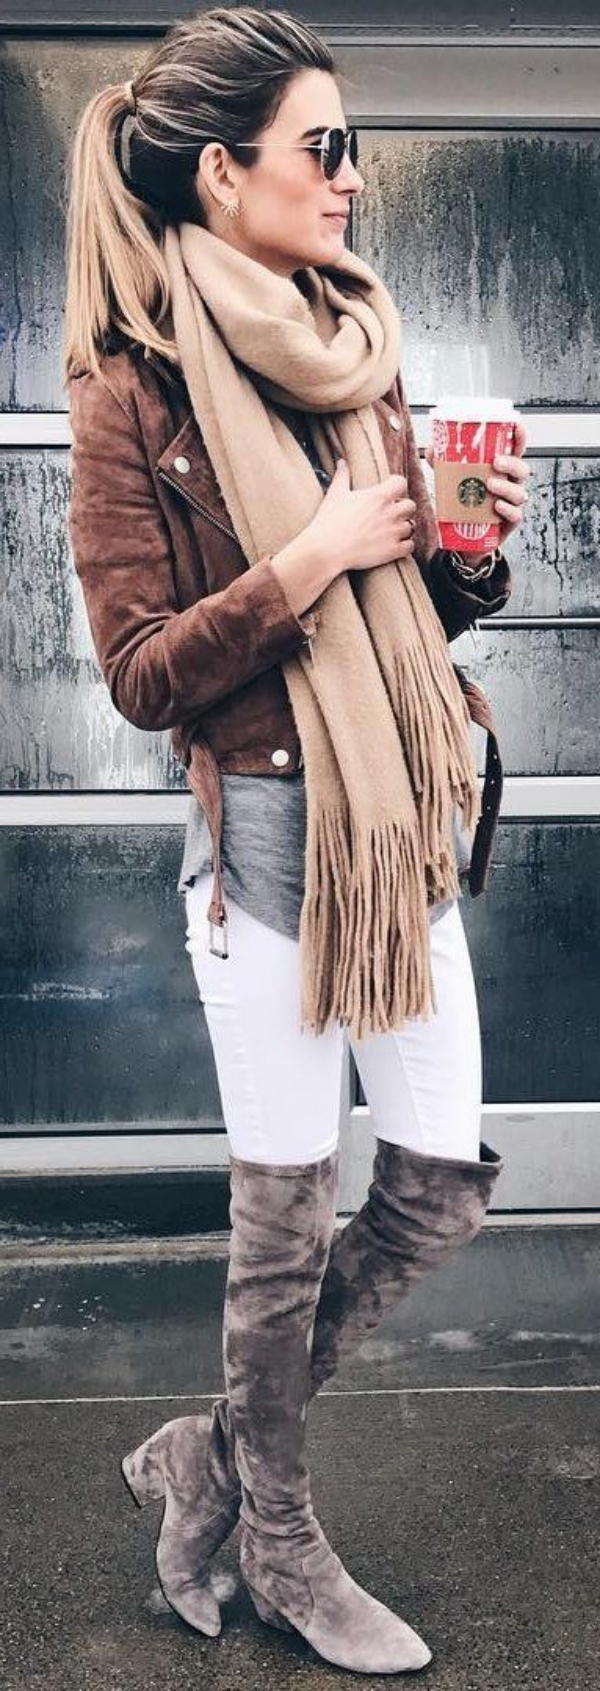 Autumn-Fashion-Outfits-Ideas-9